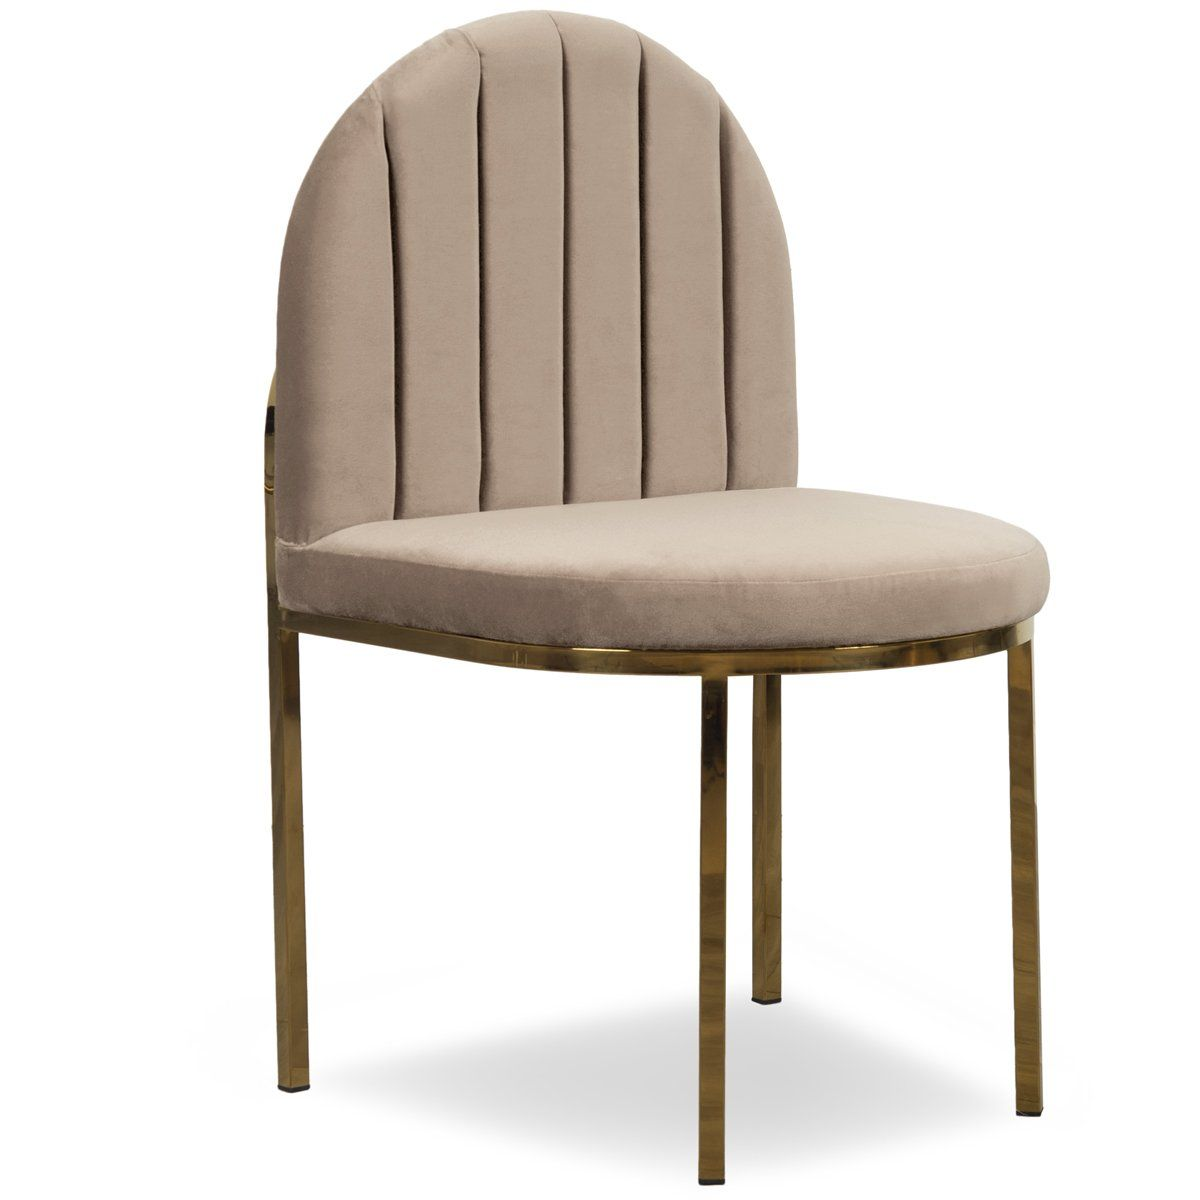 008 Dining Chair In Channel Tufted Velvet Dining Chairs Leather